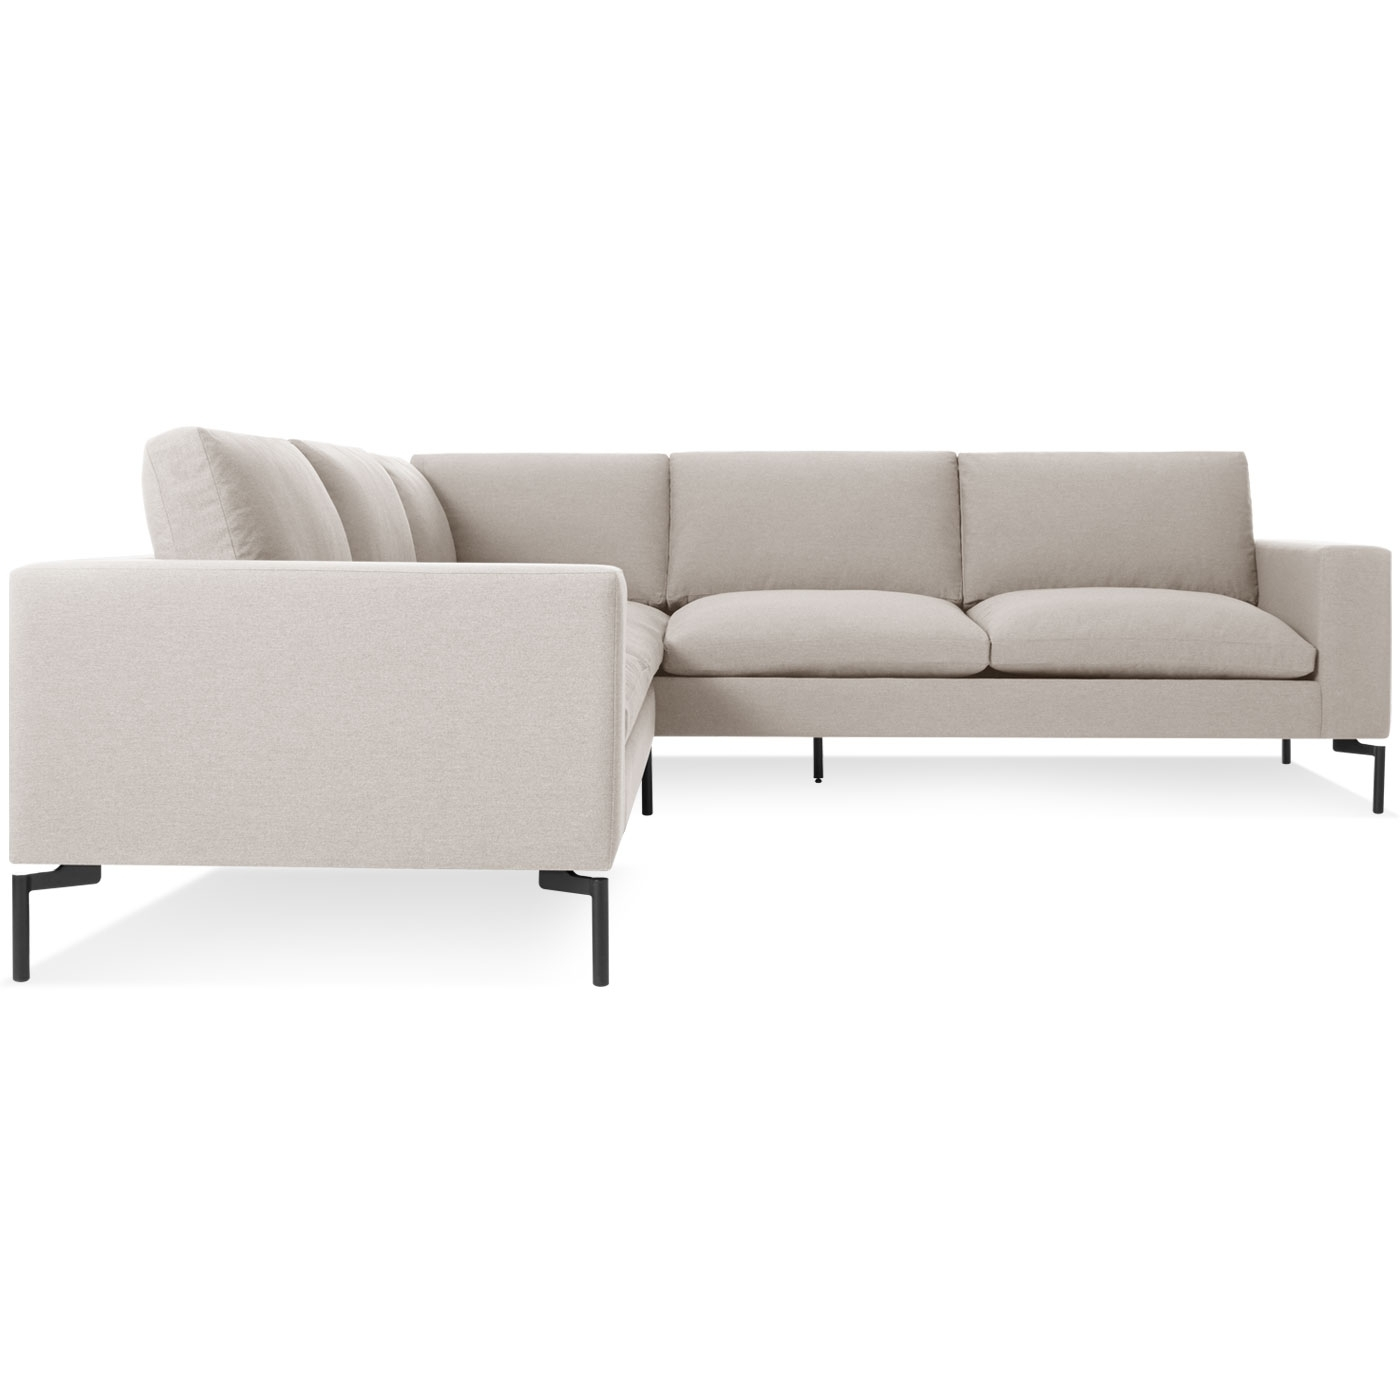 Kijiji Montreal Sectional Sofas Intended For Newest New Standard Small Sectional Sofa – Modern Sofas (View 15 of 15)